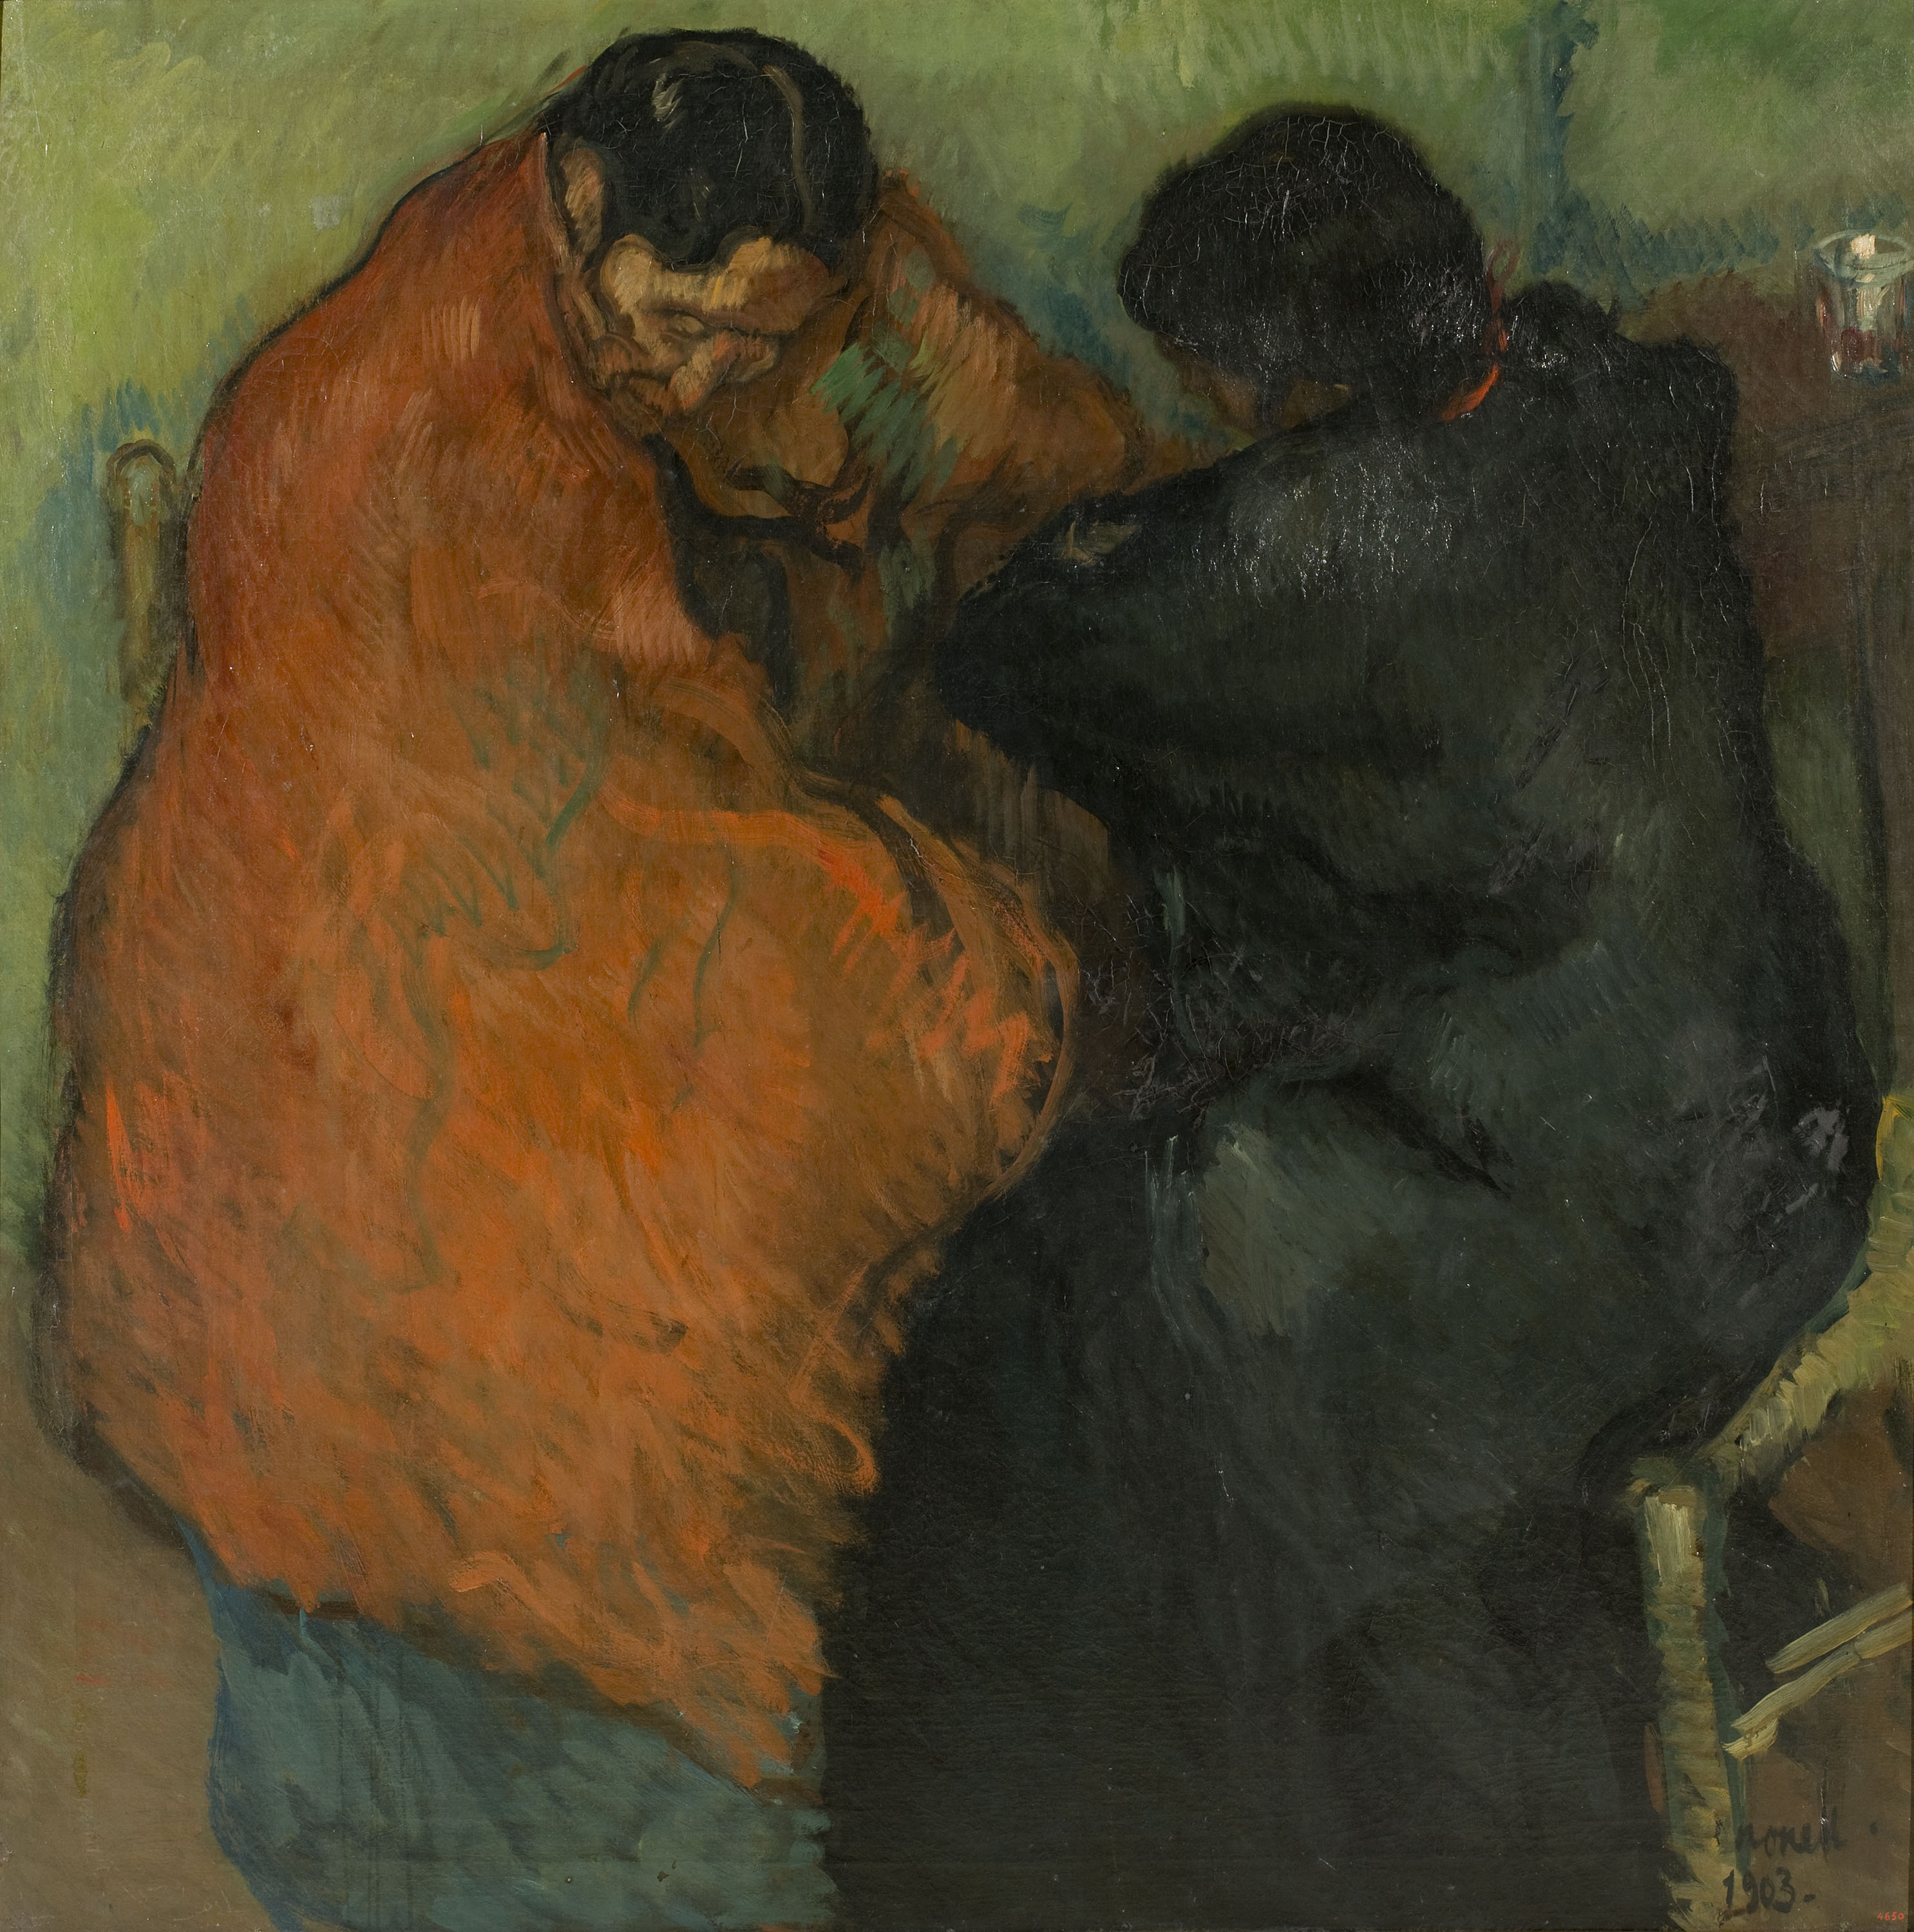 Isidre Nonell - Two Gypsy Women - Barcelona, 1903